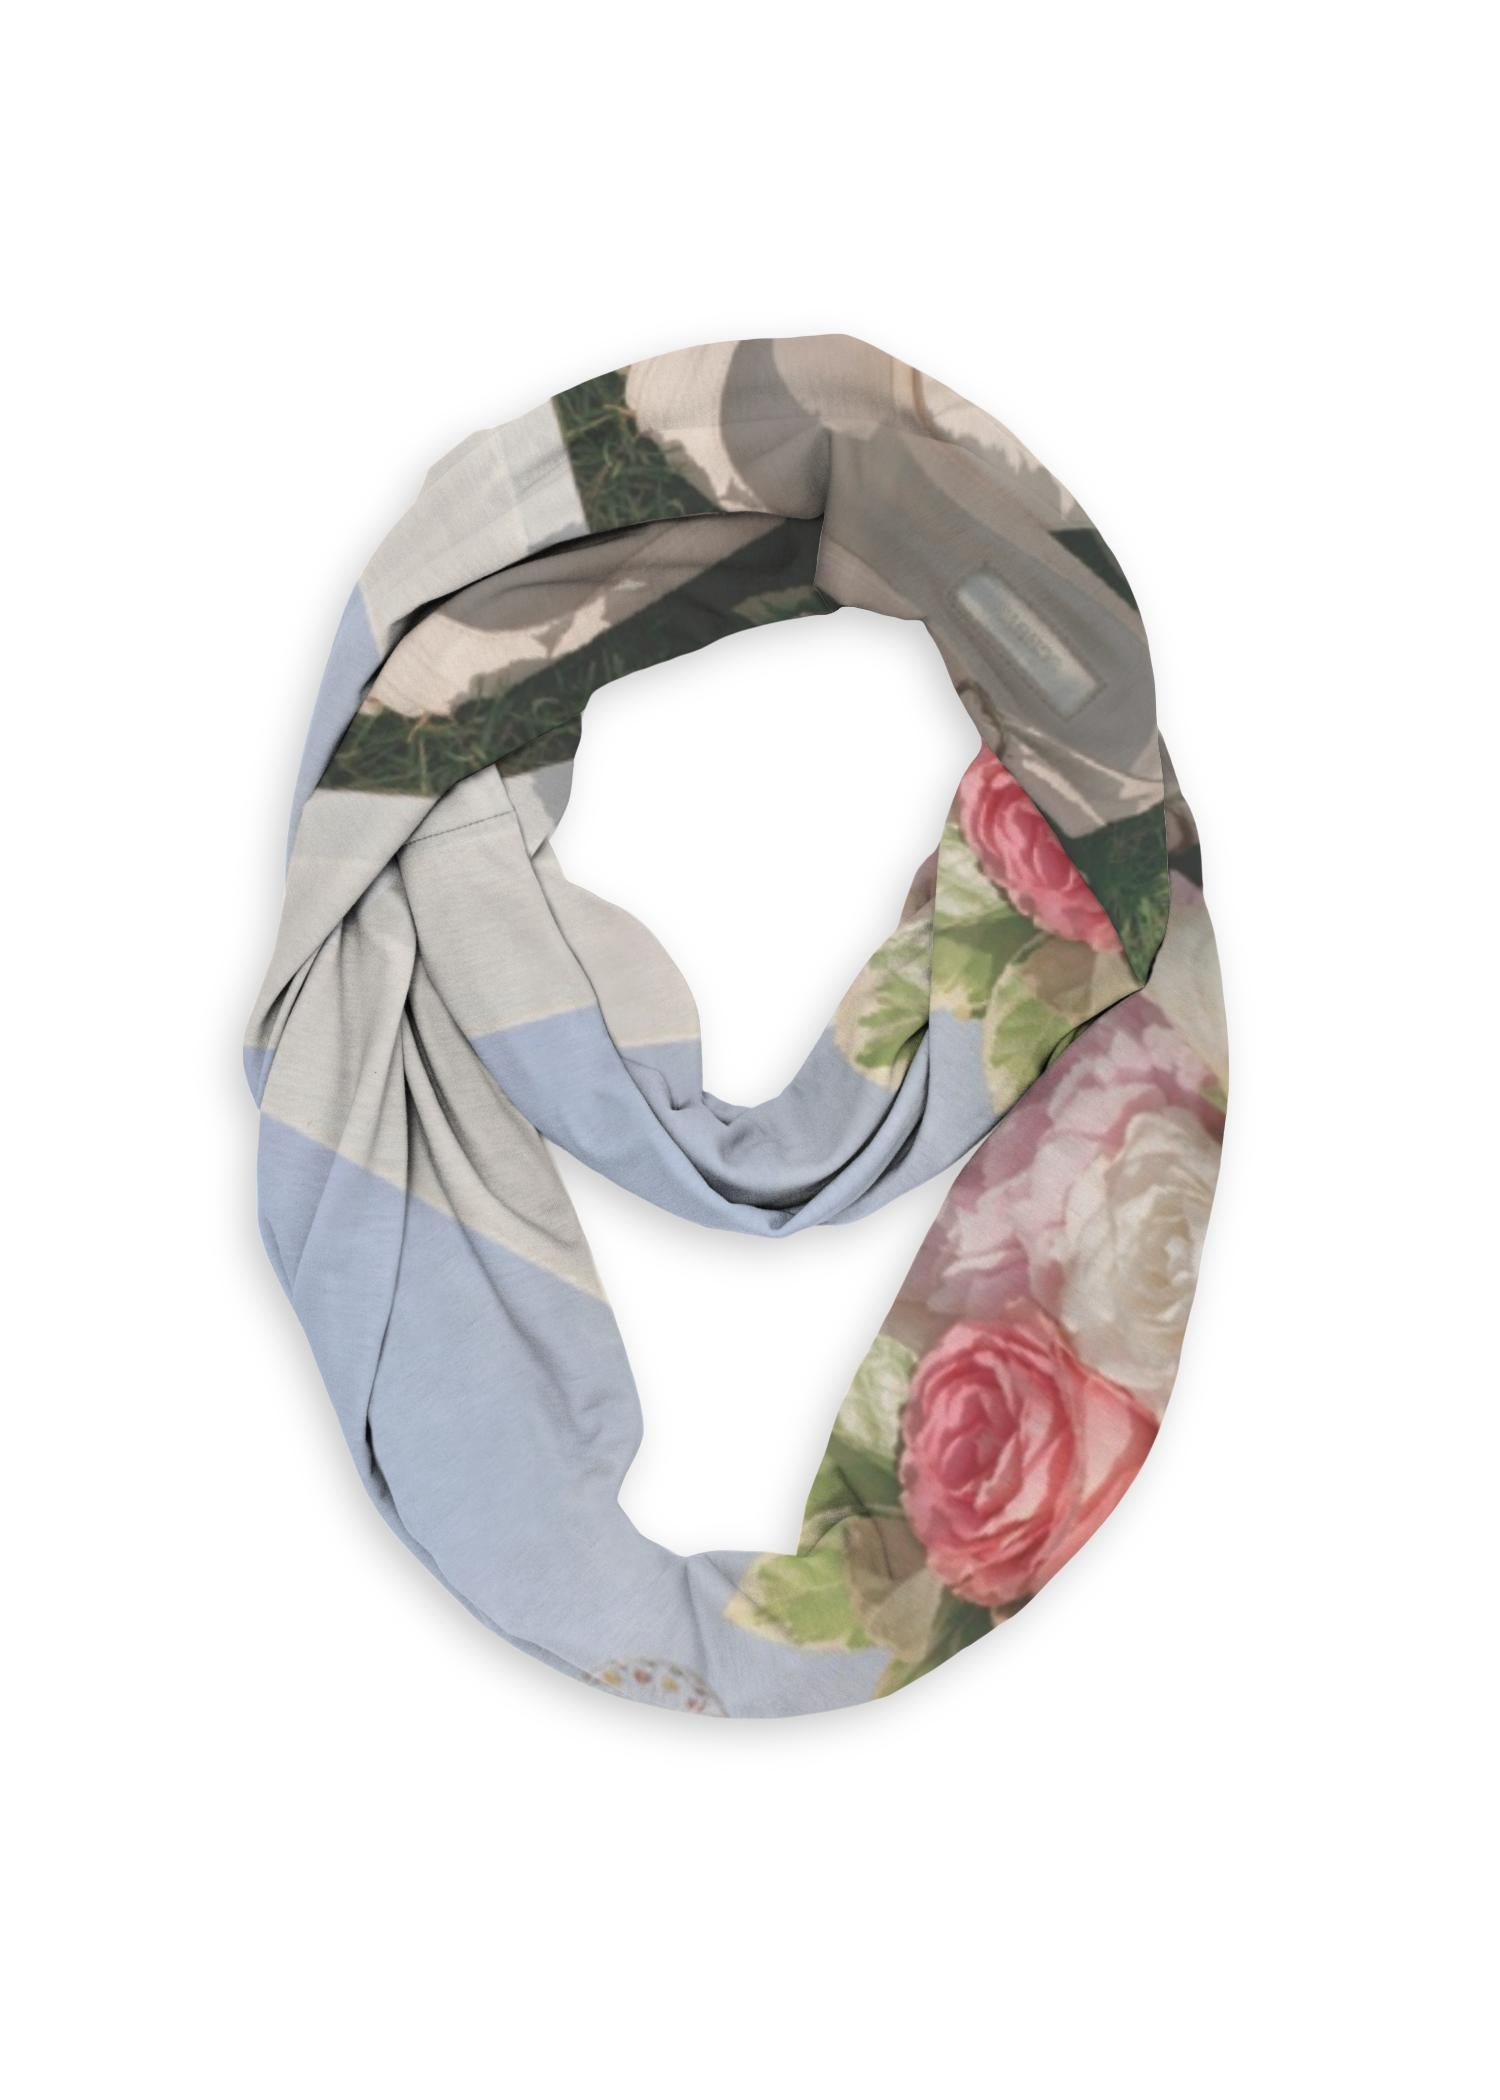 Infinity Eco Scarf - Artwork: Love Santa Monica Pier Designed By: Christine Aka Stine1